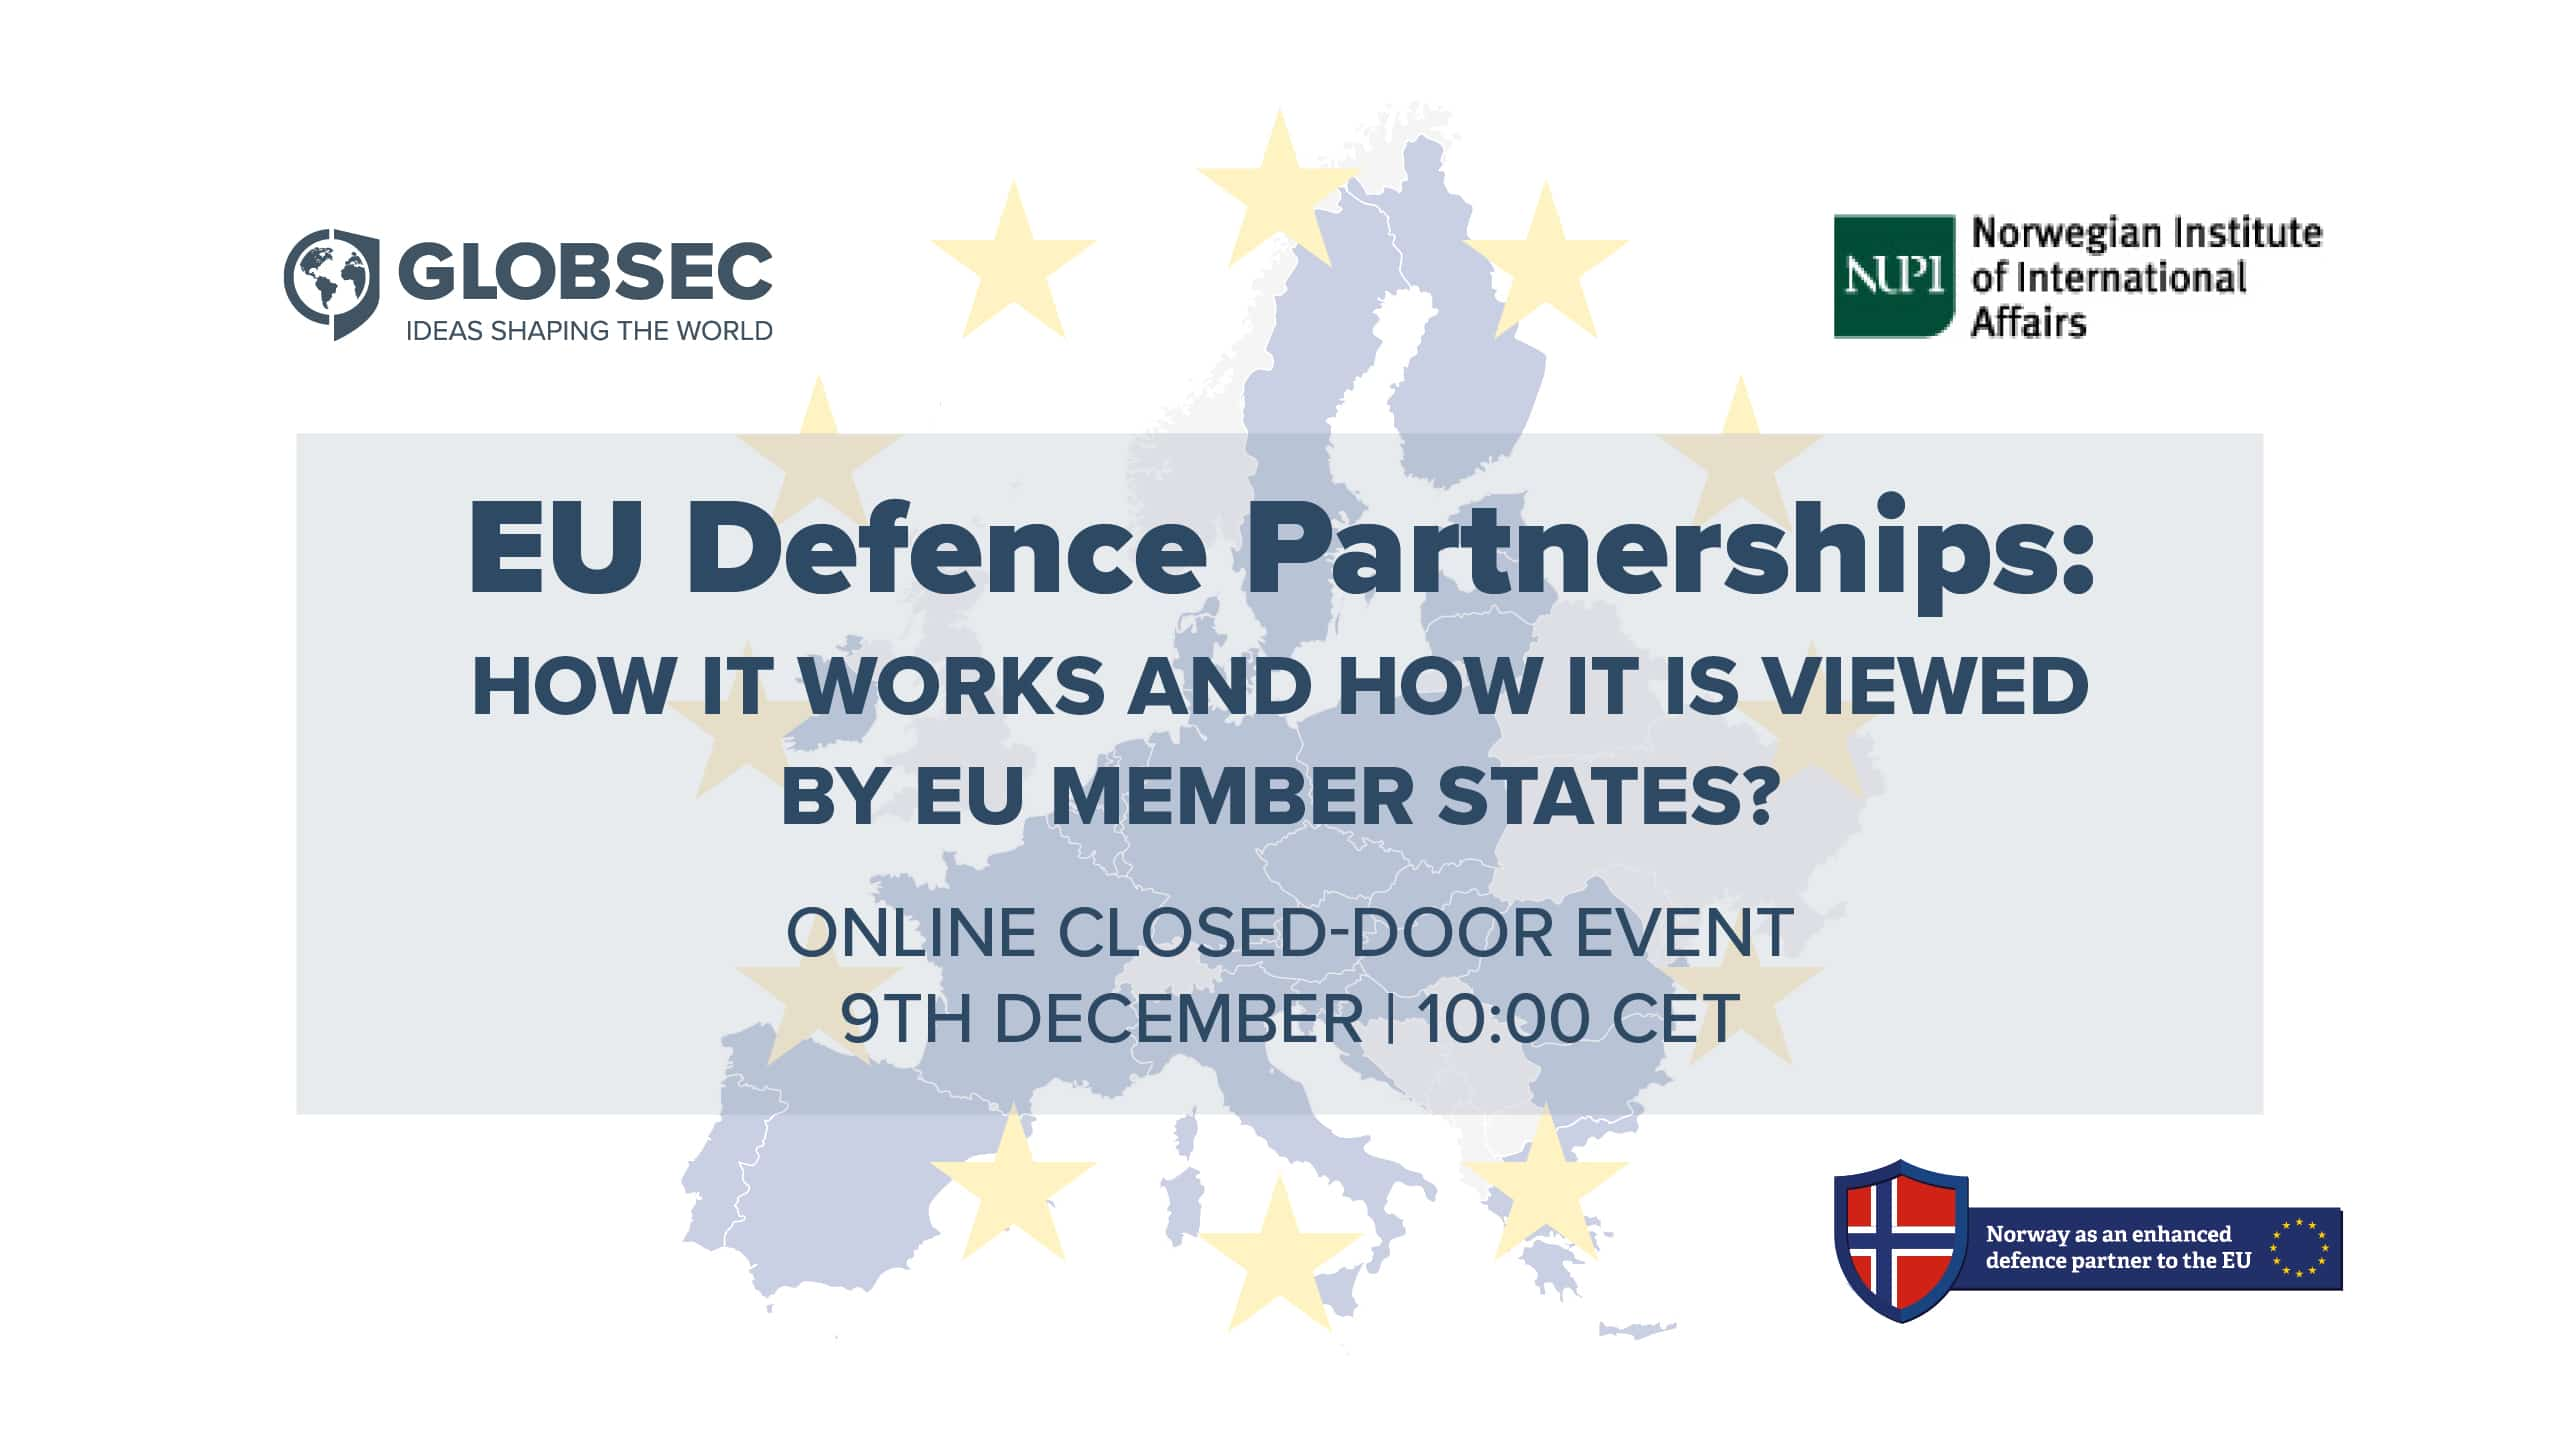 09.12.2020 - EU Defence Partnerships: How it works and how it is viewed by EU member states?